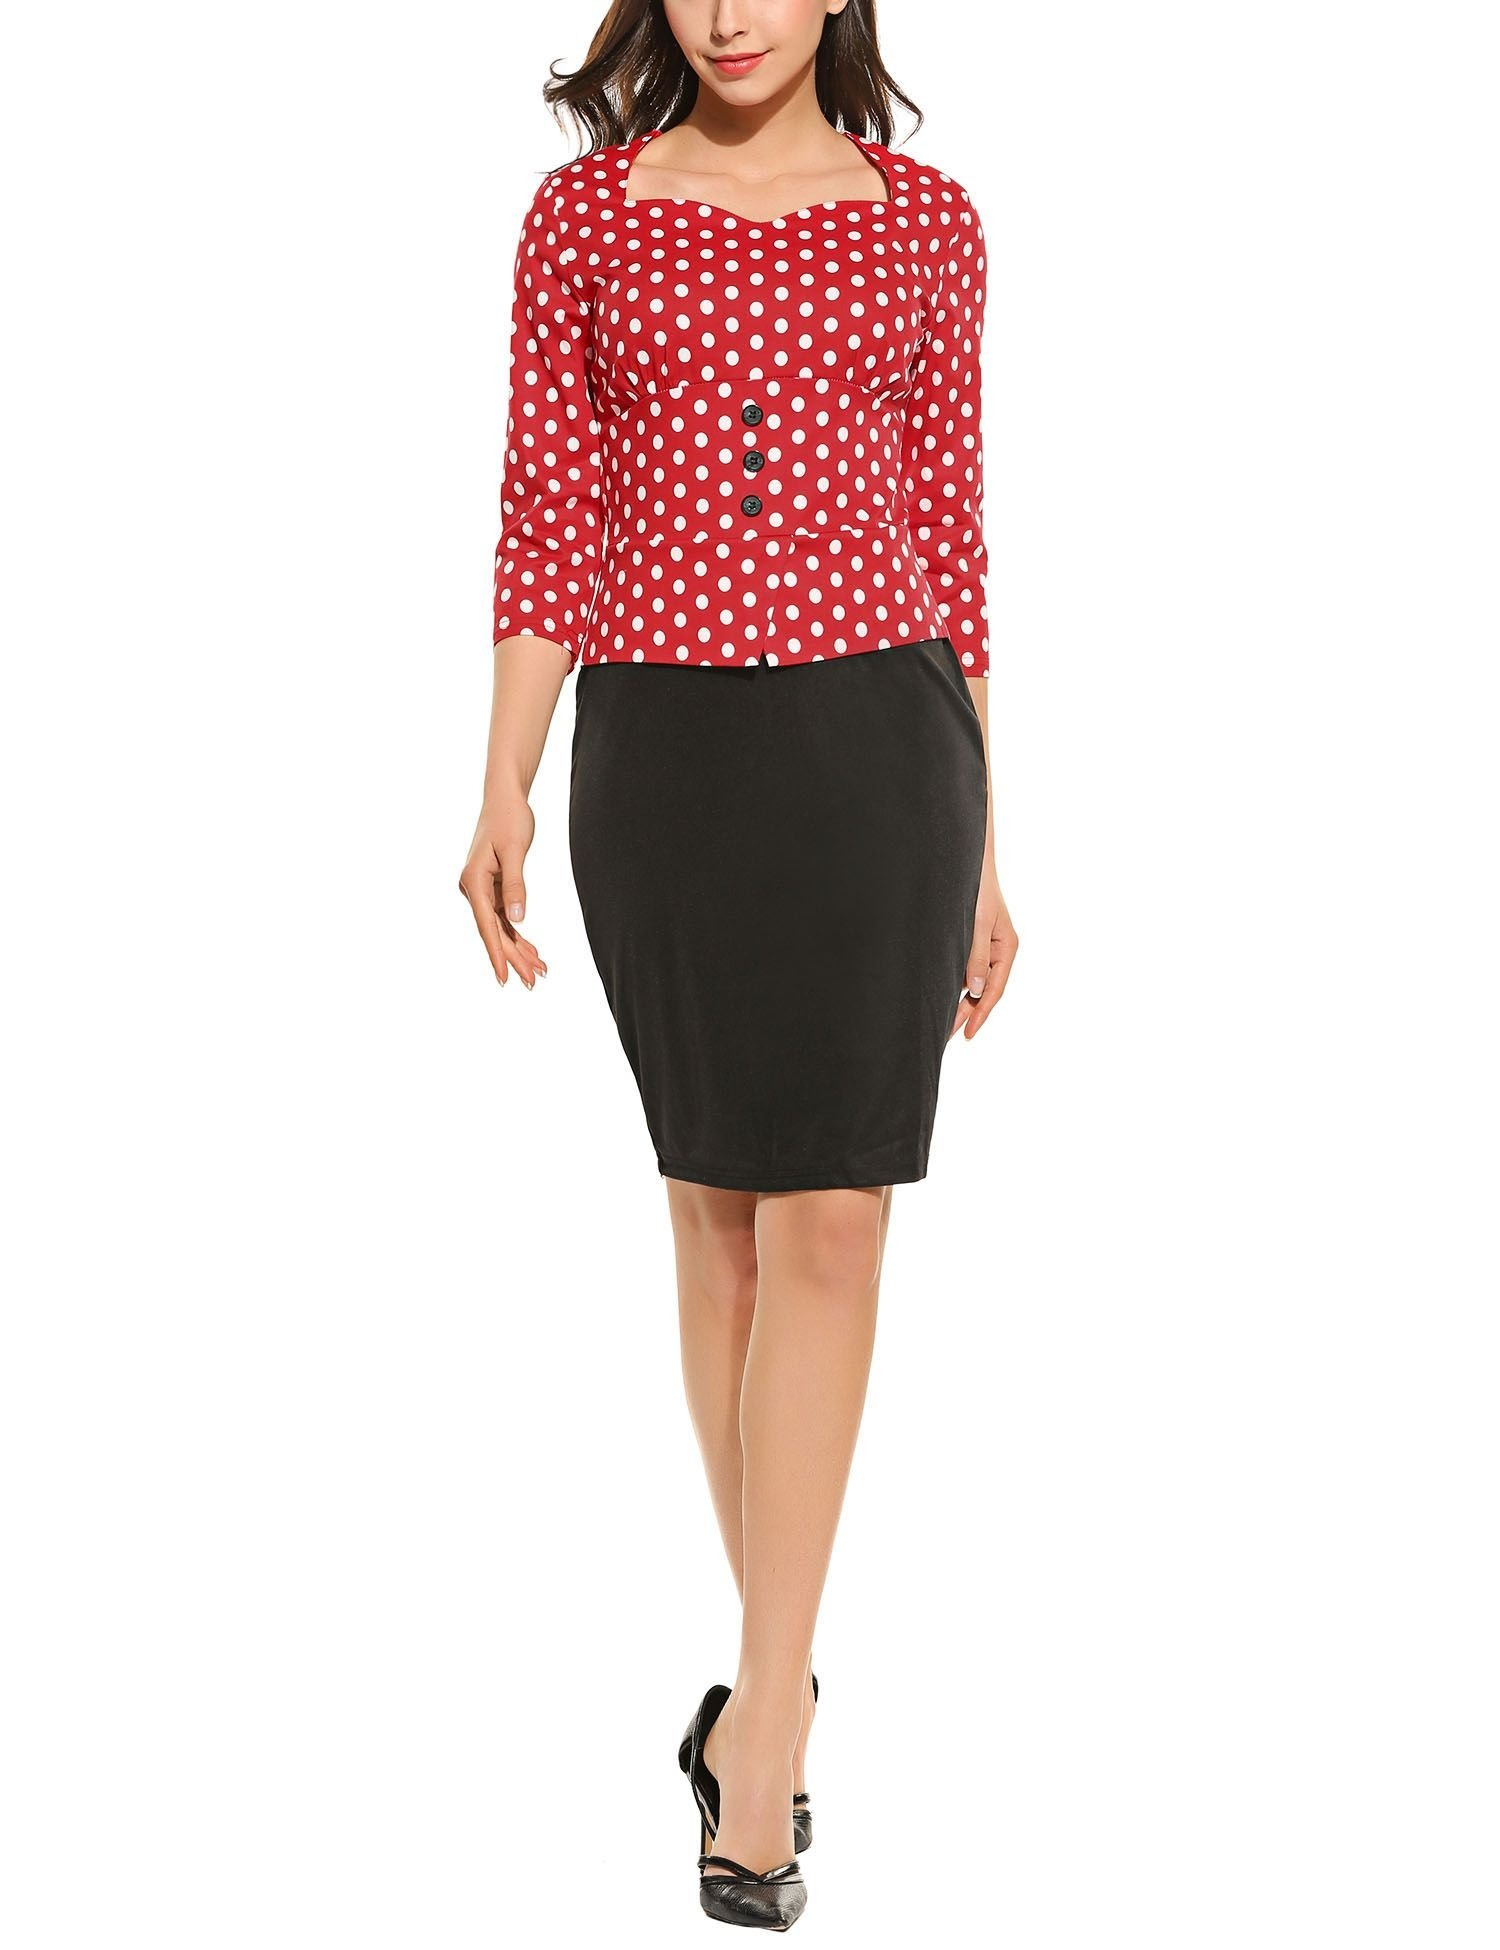 Hotouch Women's 3/4 Sleeve Polka Dot Wear to Work Business Bodycon One-Piece Dress (Red,L)